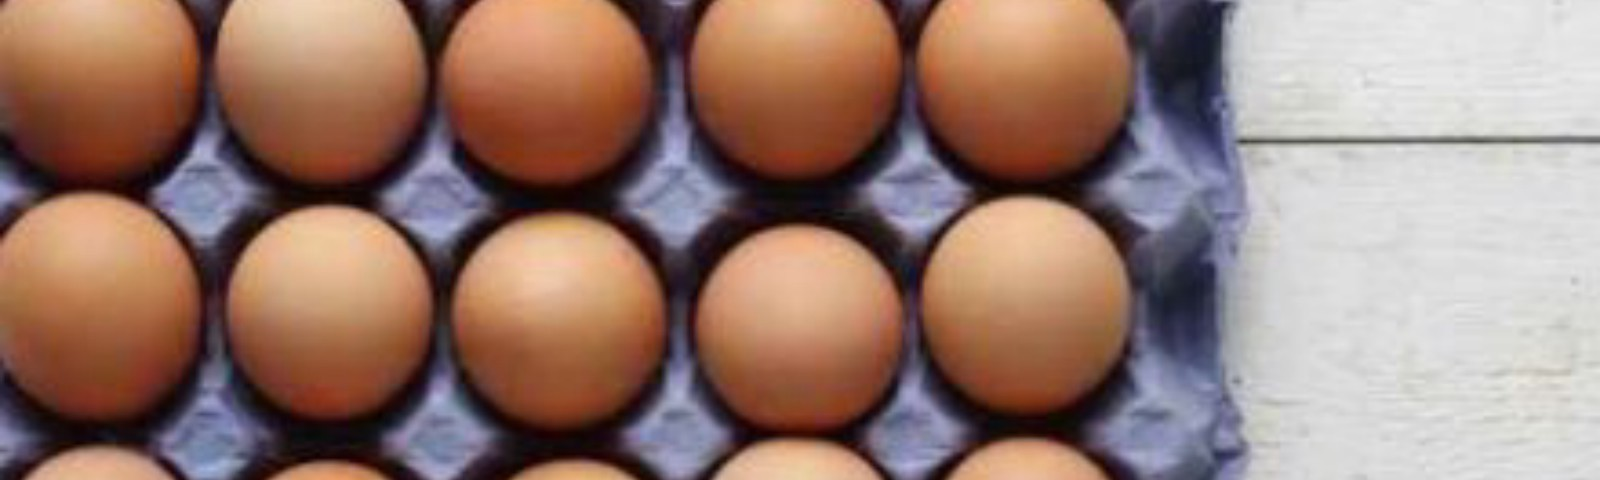 Does Eating Eggs Increase Your Risk of Dementia?